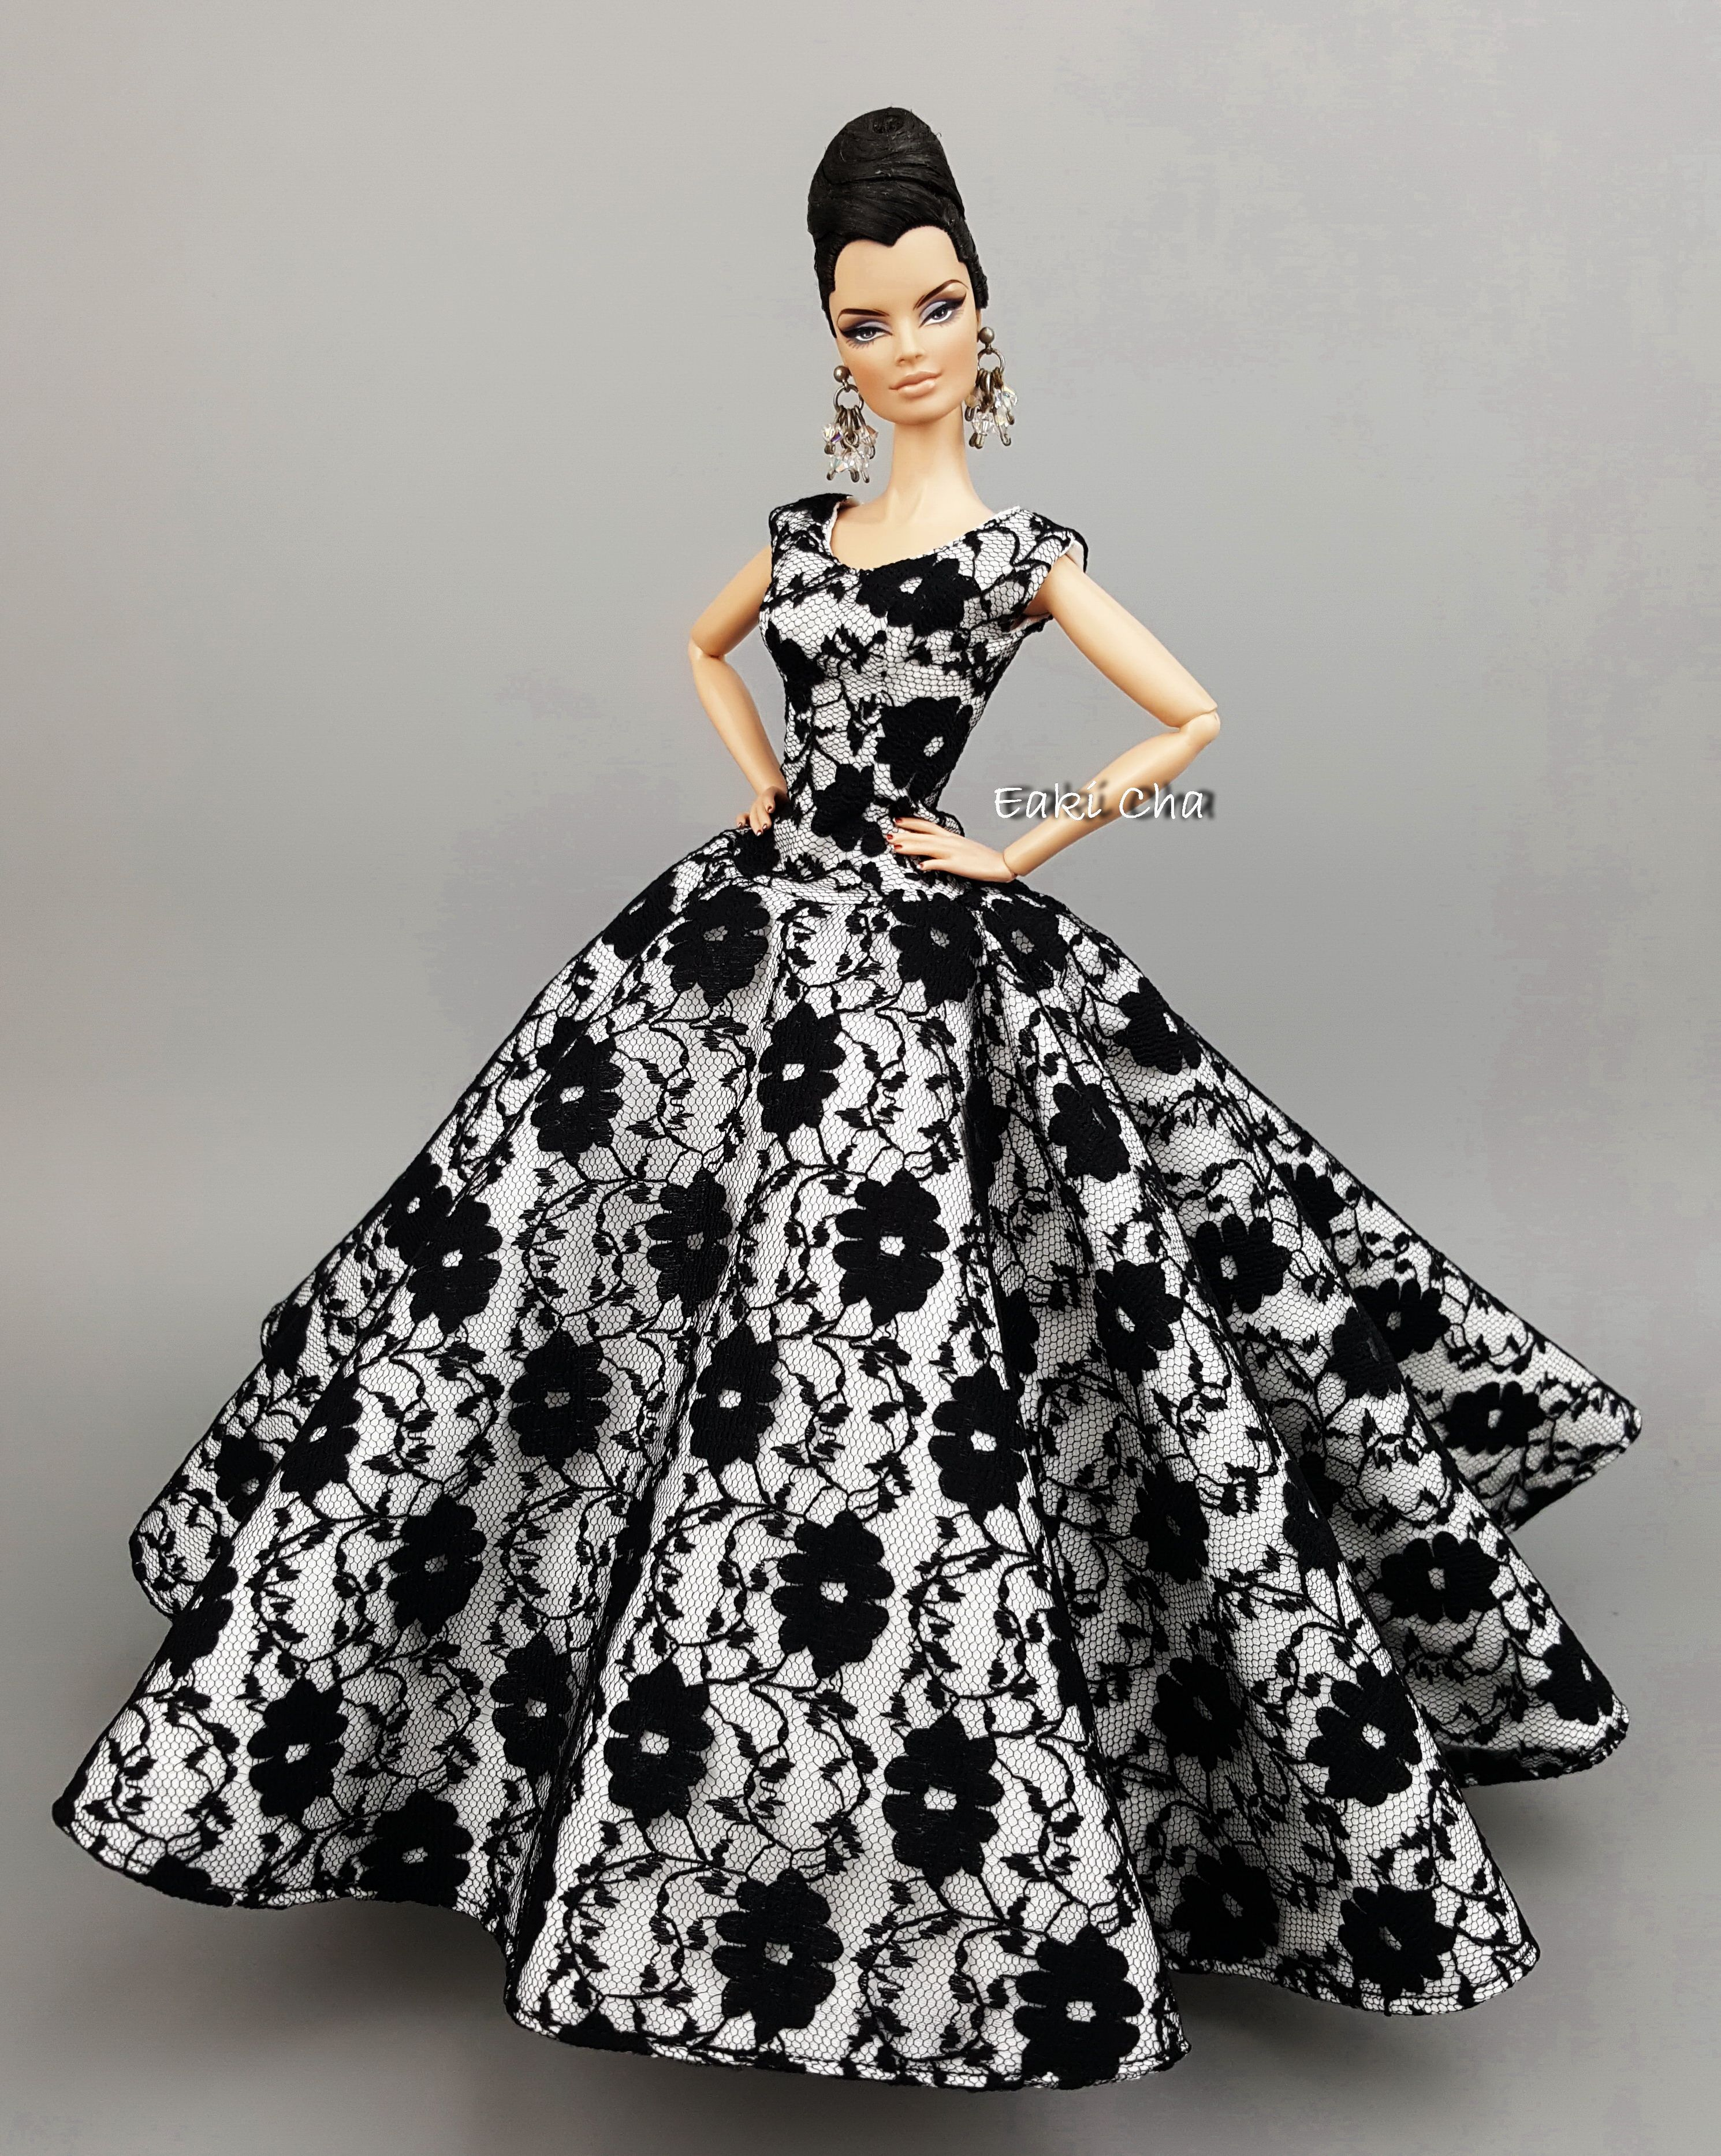 Brown Gown with Lots of Beautiful Black Lace Made to Fit Barbie Doll